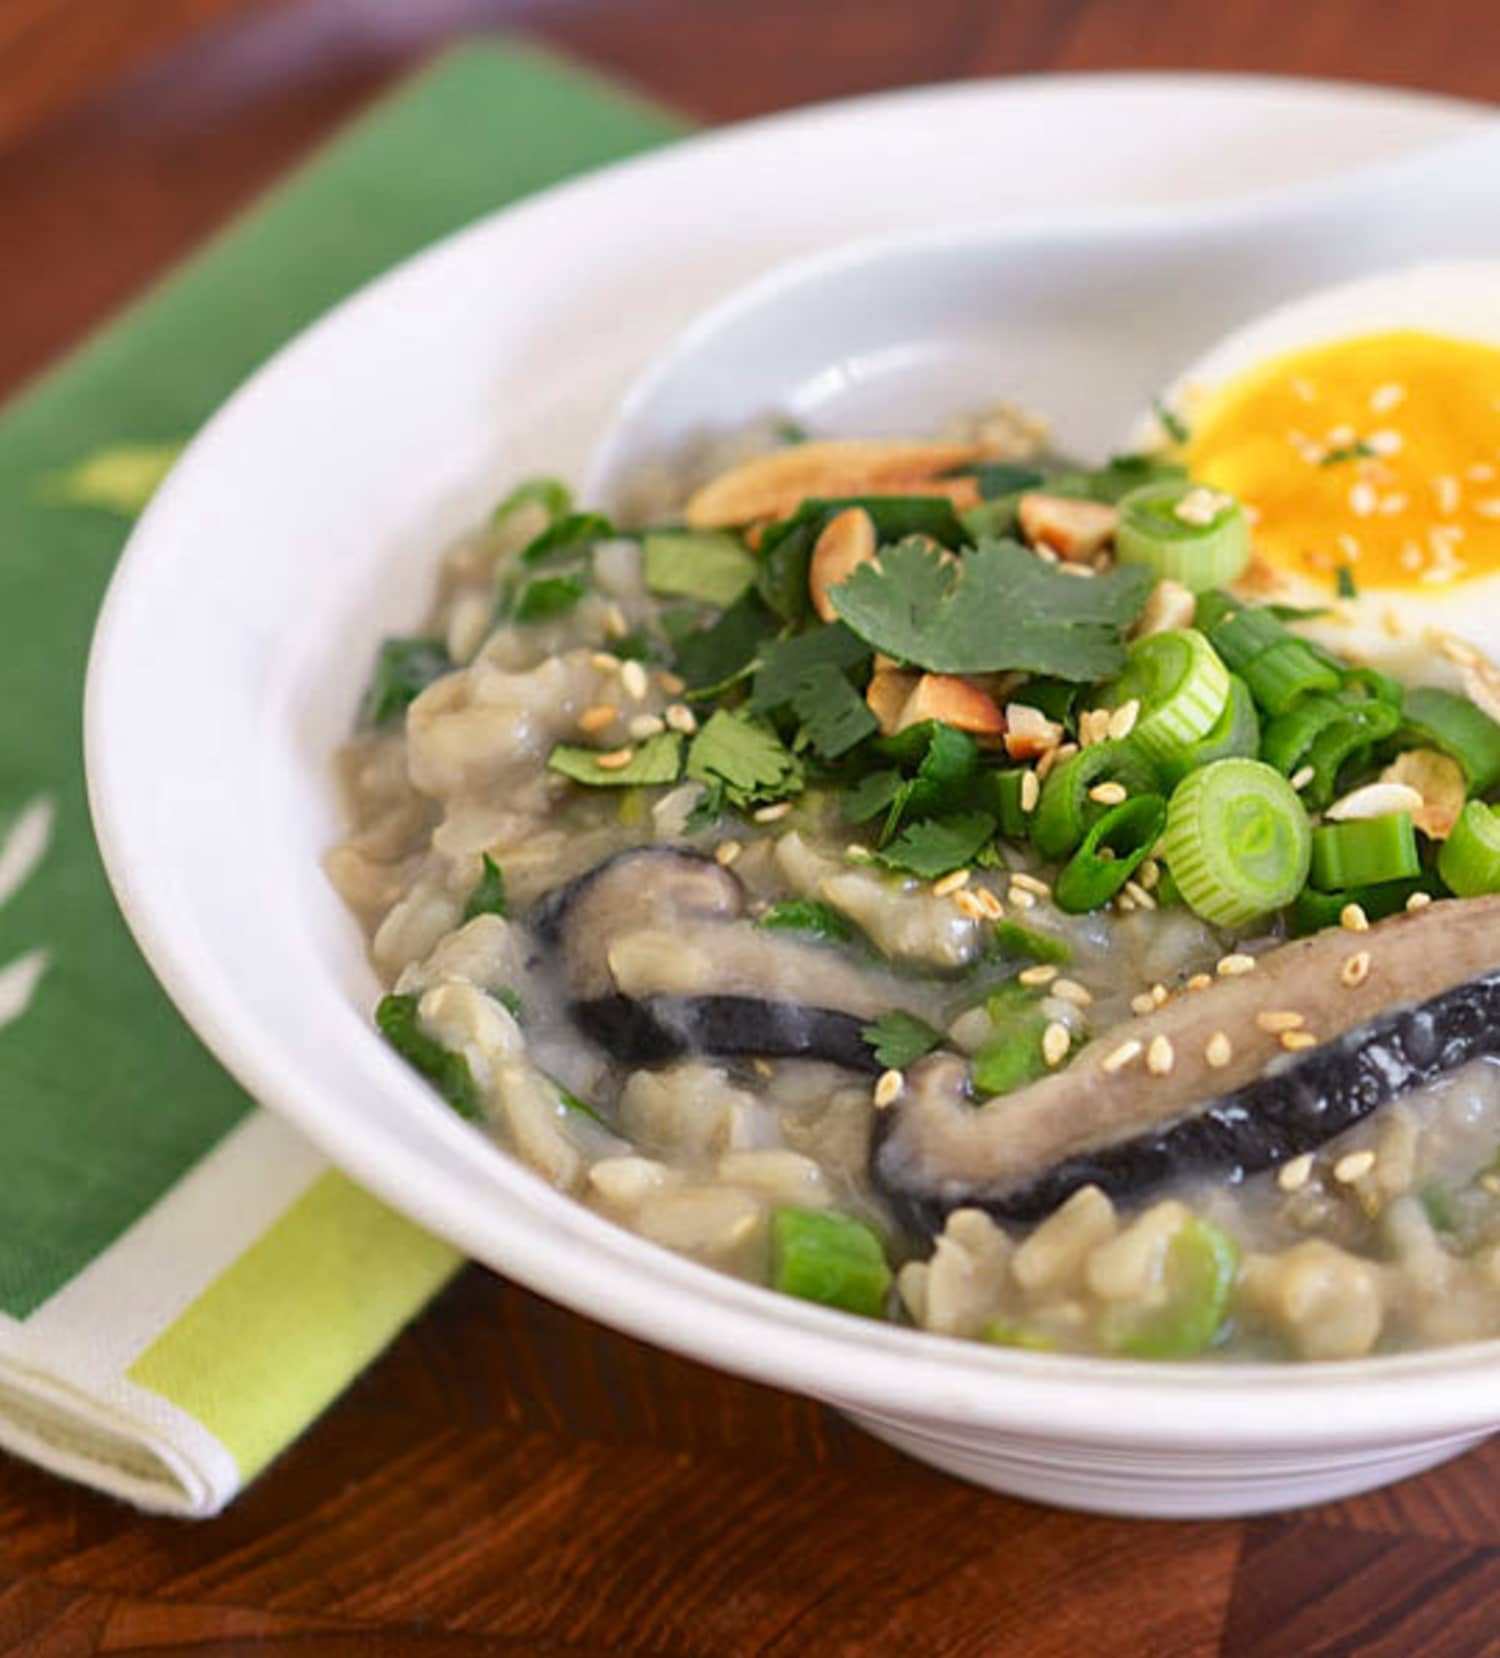 Brown Rice Congee with Shiitake Mushrooms and Greens